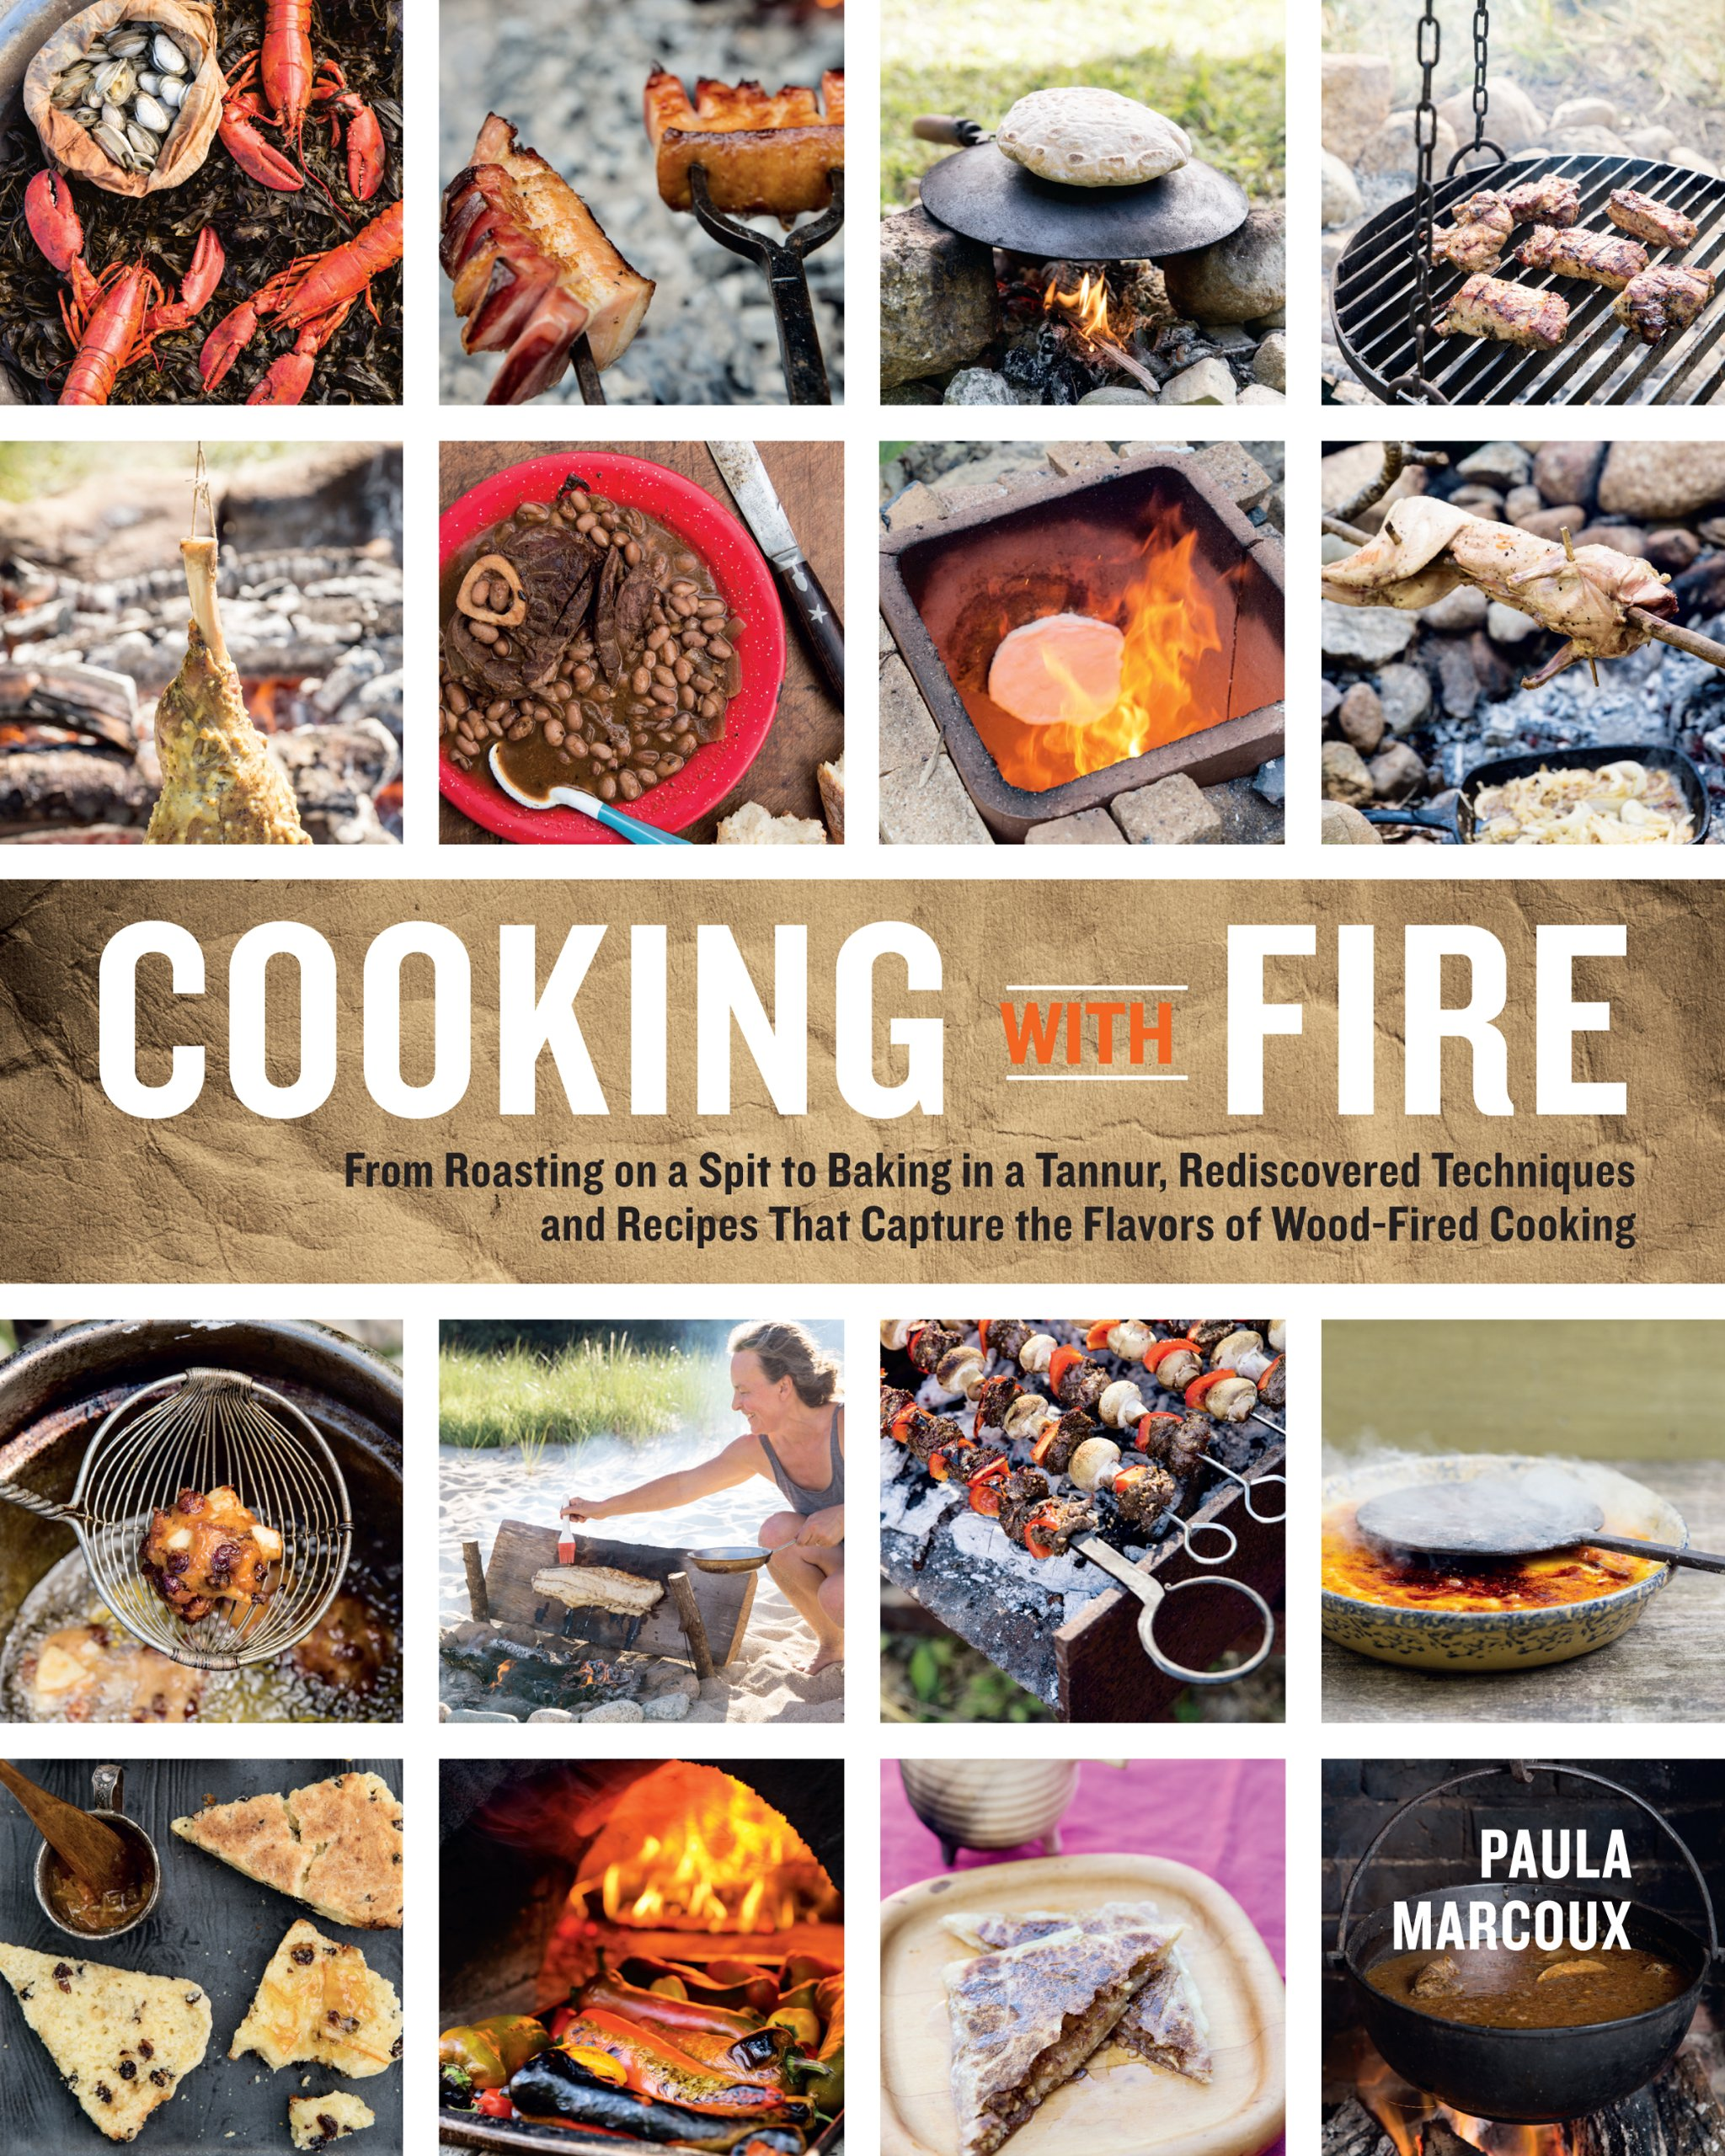 Cooking with Fire: From Roasting on a Spit to Baking in a Tannur, Rediscovered Techniques and Recipes That Capture the… 1